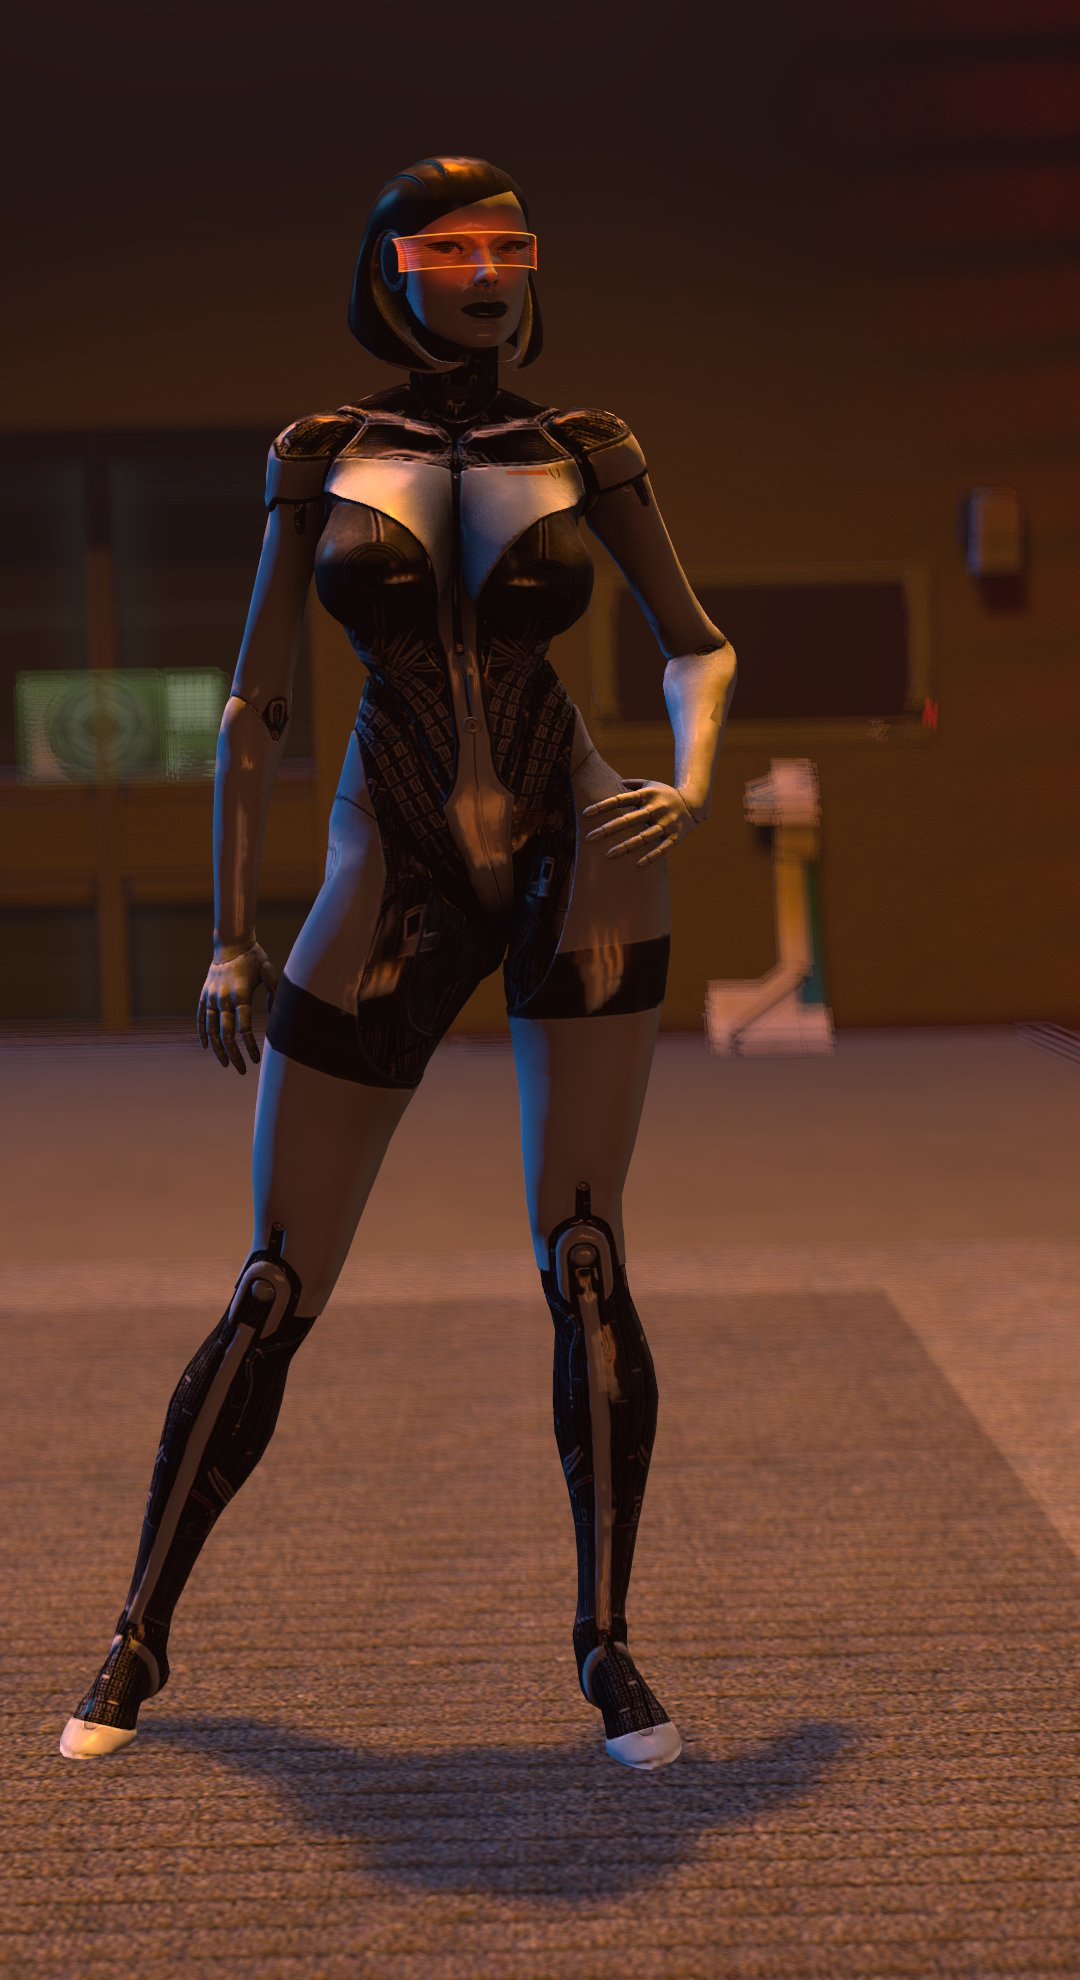 android big_breasts breasts edi looking_at_viewer mass_effect mass_effect_3 robot source_filmmaker